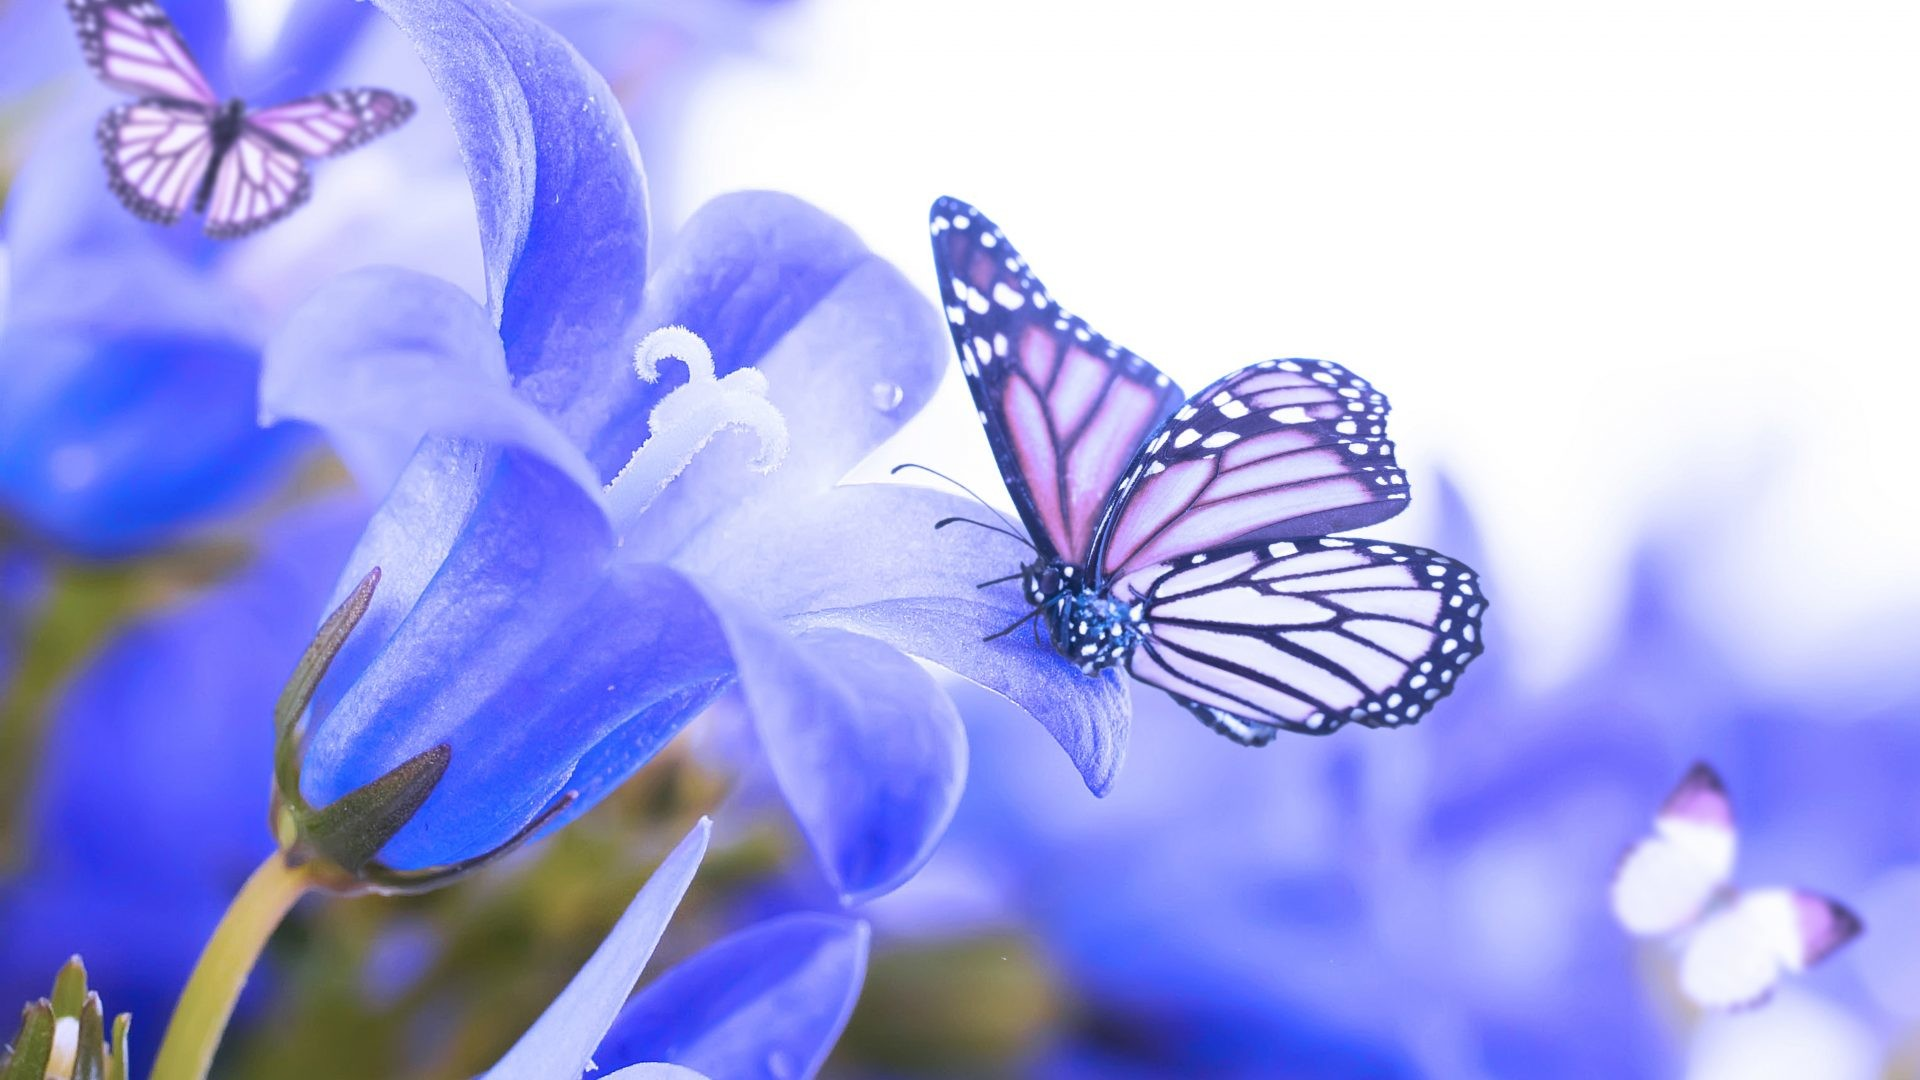 1920x1080 Blue Beautiful Butterflies Nature Simply Flowers Butterfly Flower Wallpaper And Backgrounds